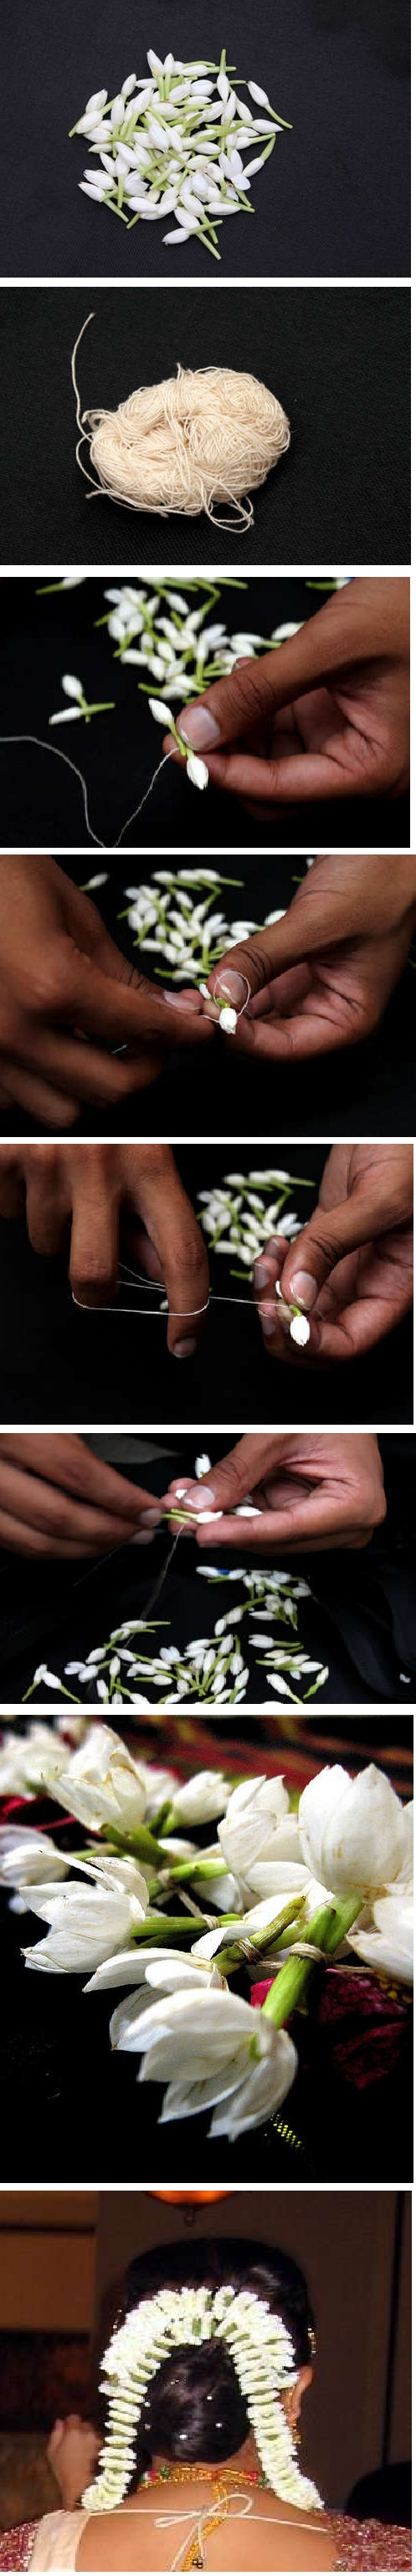 How to make a Gajra (Traditional Indian garland), typically made using jasmine flowers, to dress up your hairstyle!